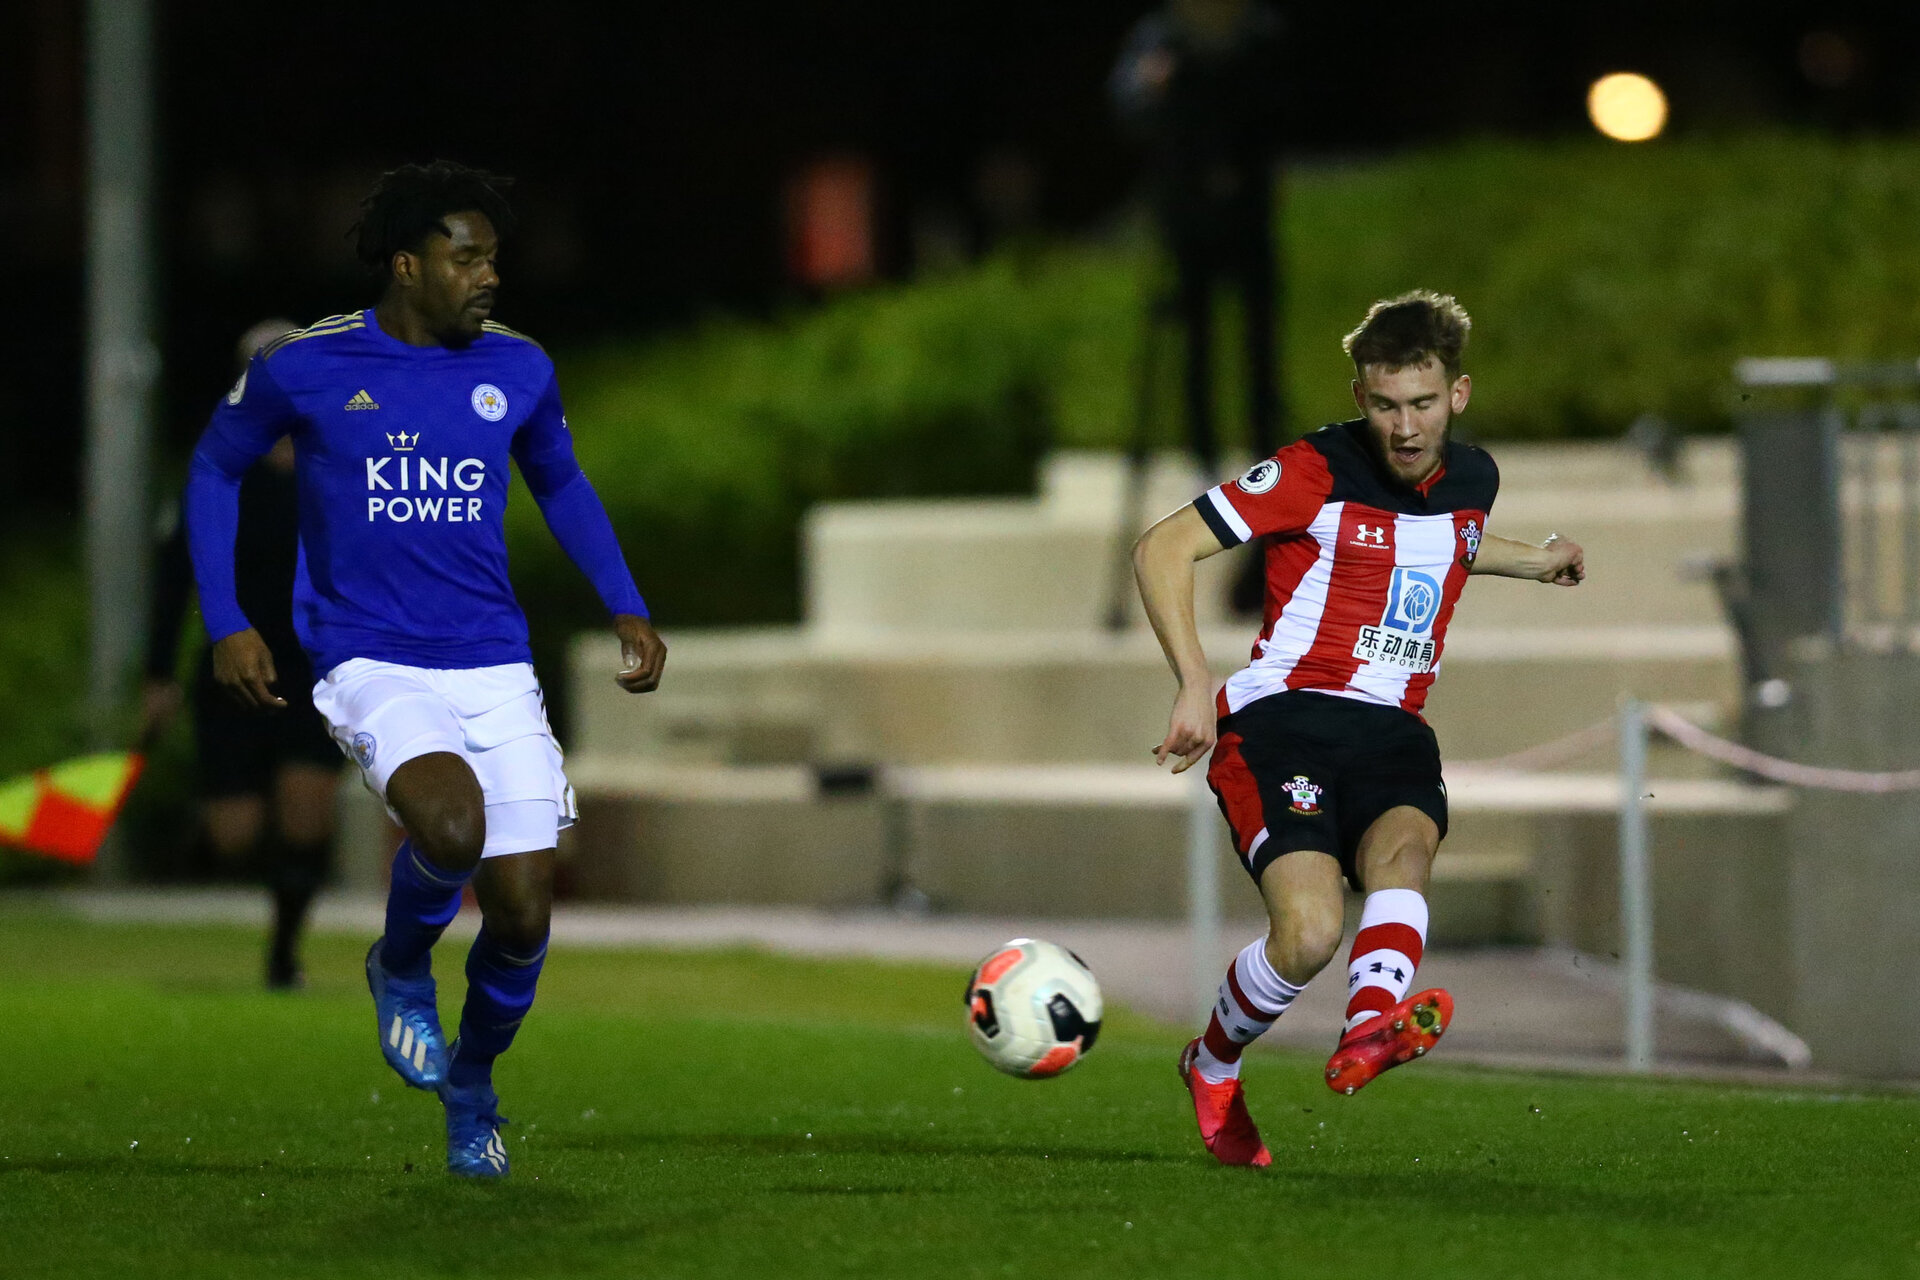 SOUTHAMPTON, ENGLAND - MARCH 02: during PL2 match between Southampton and Leicester City at Staplewood Training Center on March 02 2020 in Southampton England (Photo by Isabelle Field/Southampton FC via Getty Images)